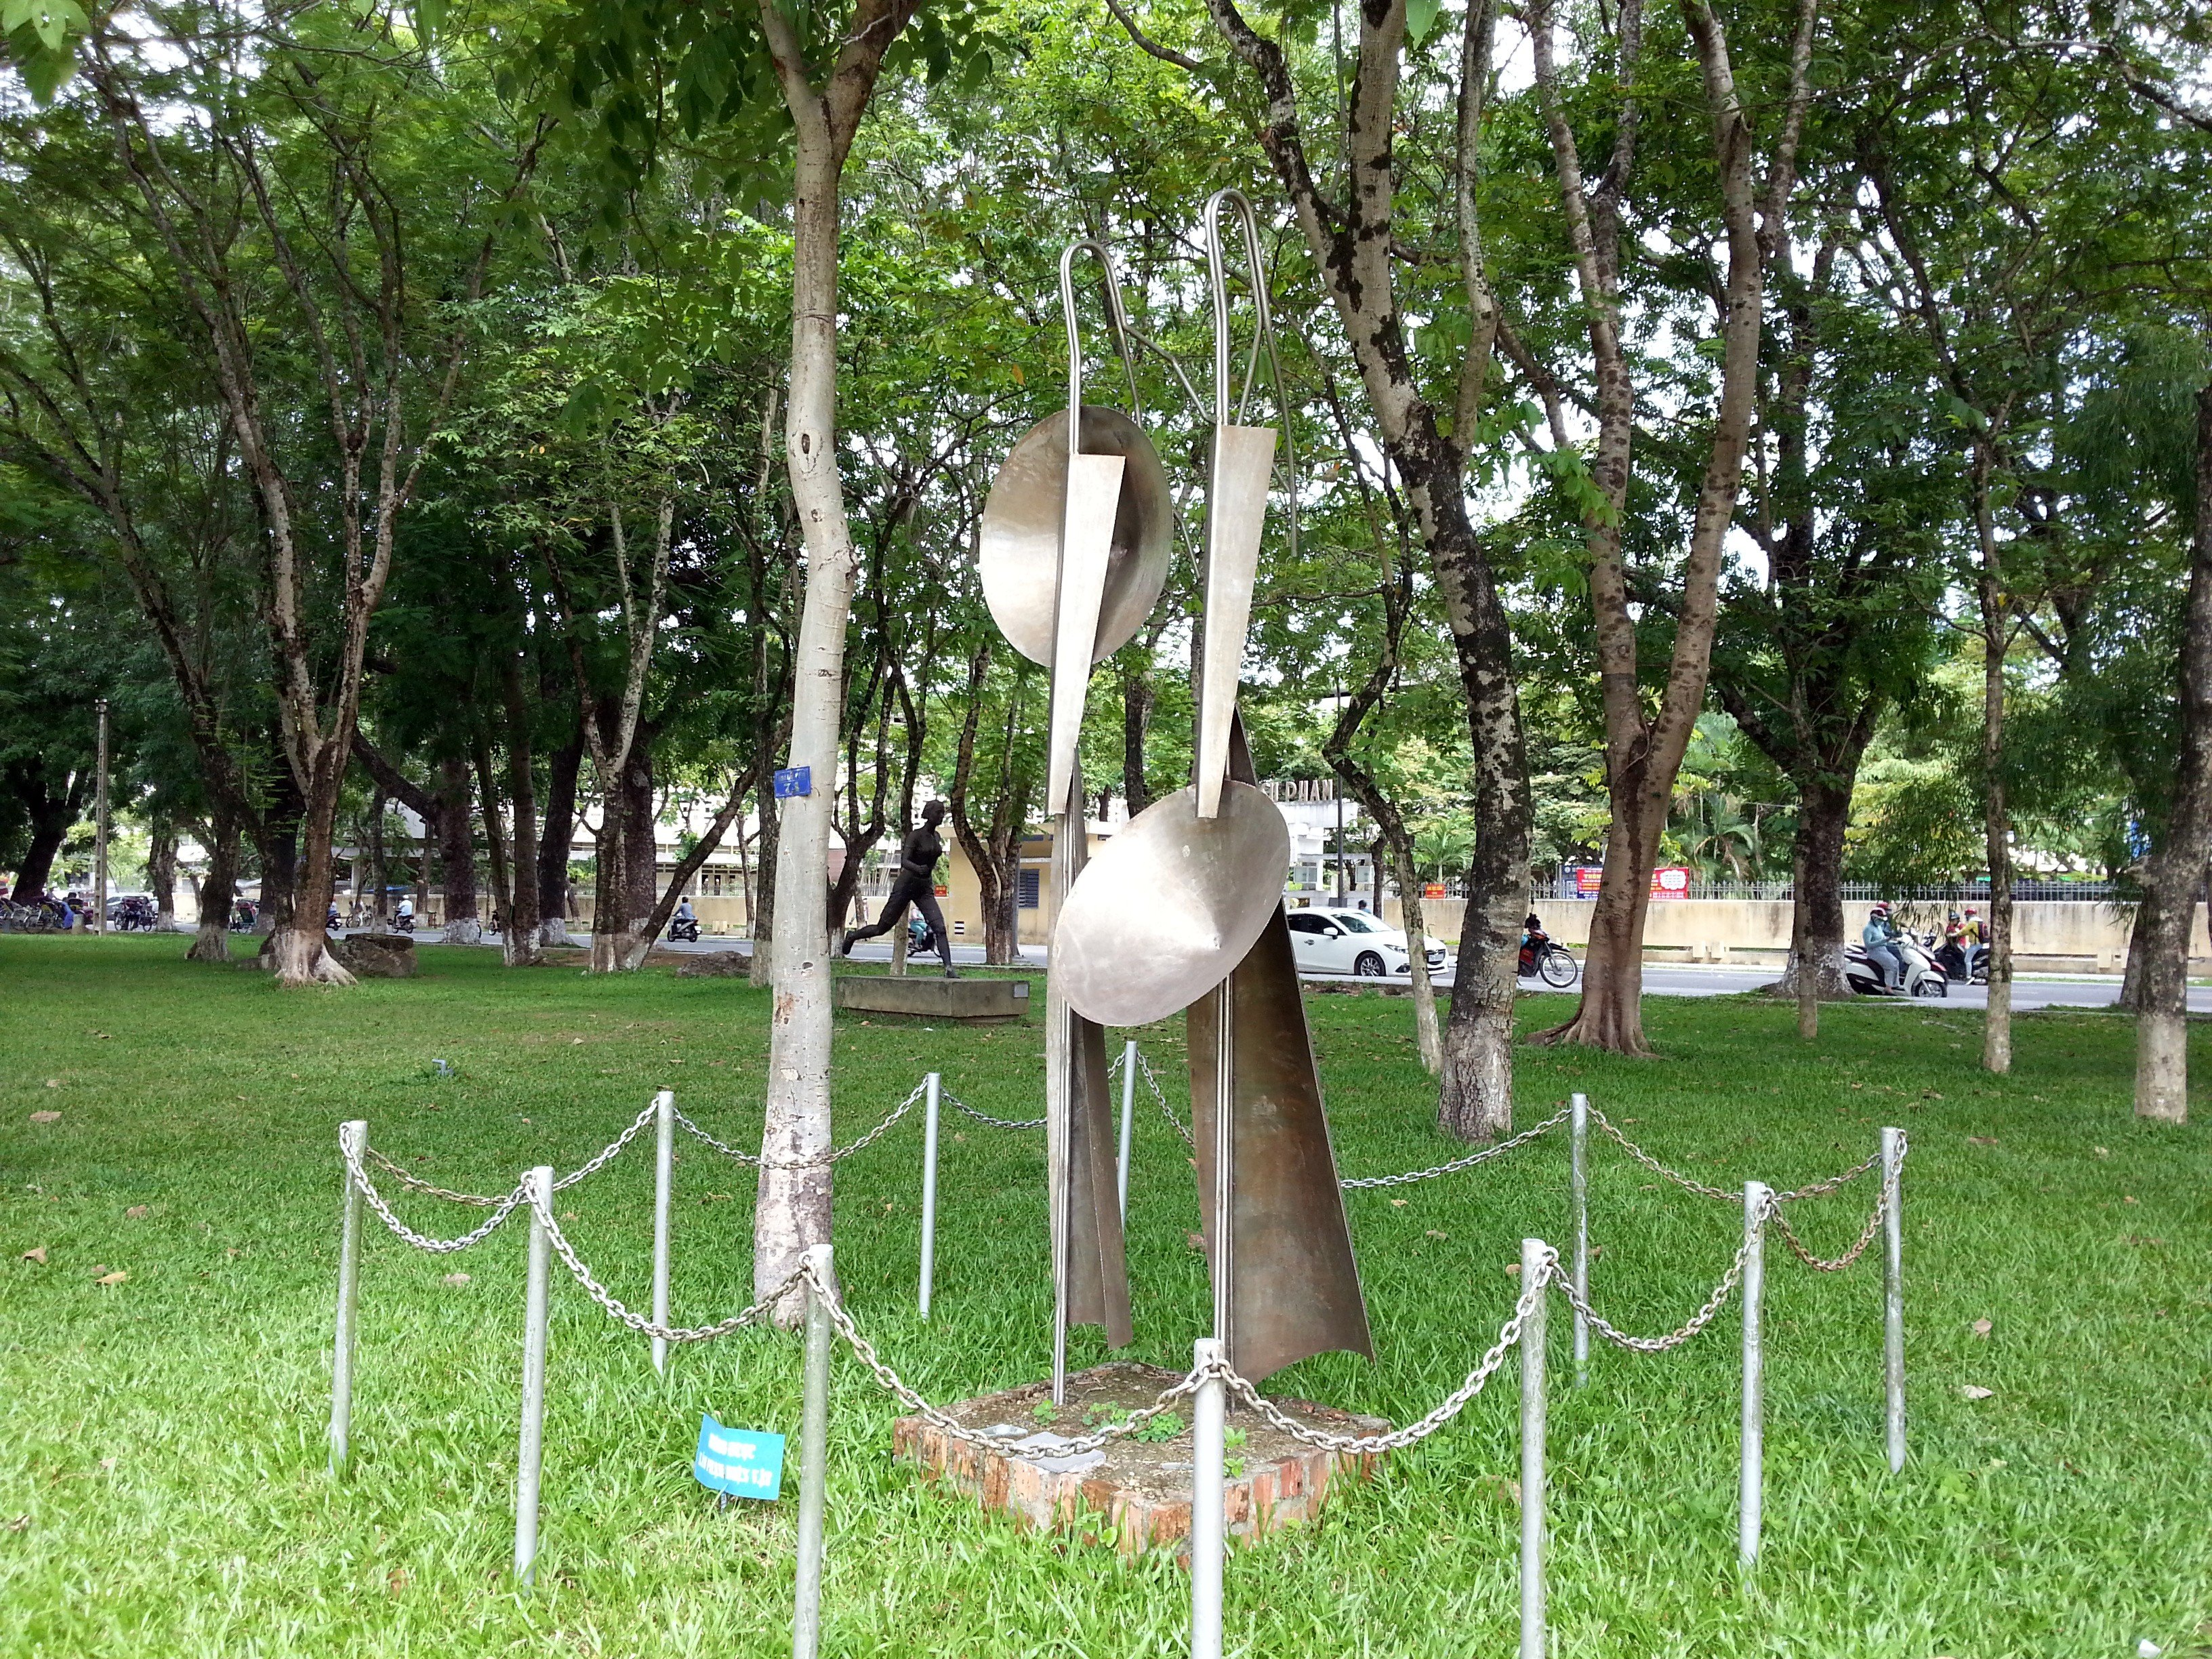 More sculpture in the 3 February Park